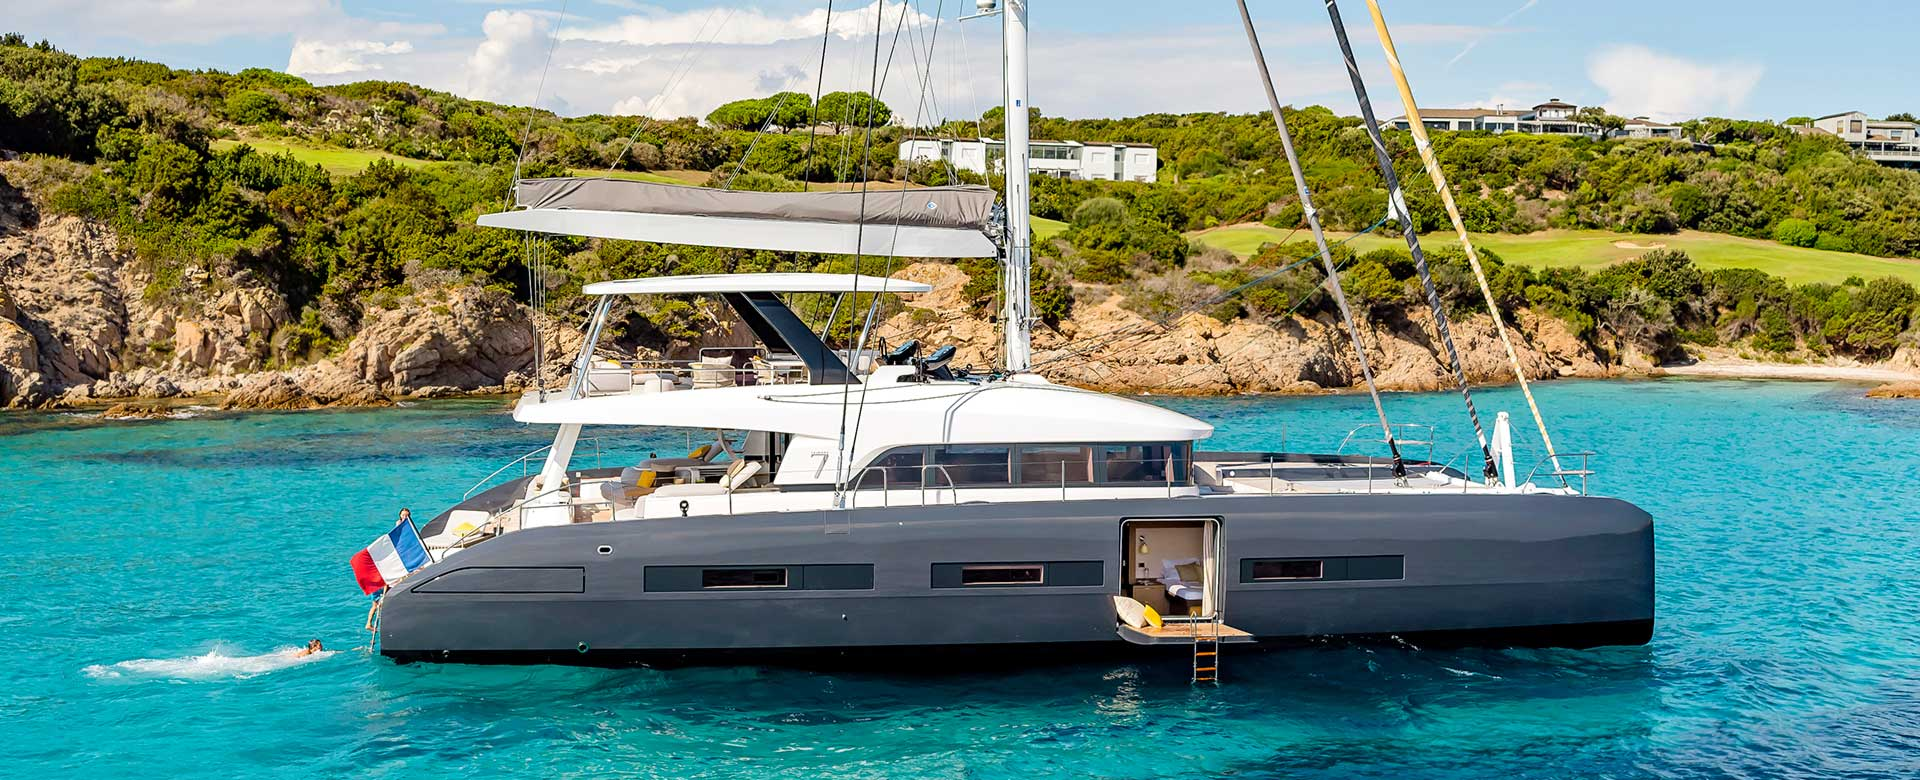 Aletheia is a TW70 luxury yacht